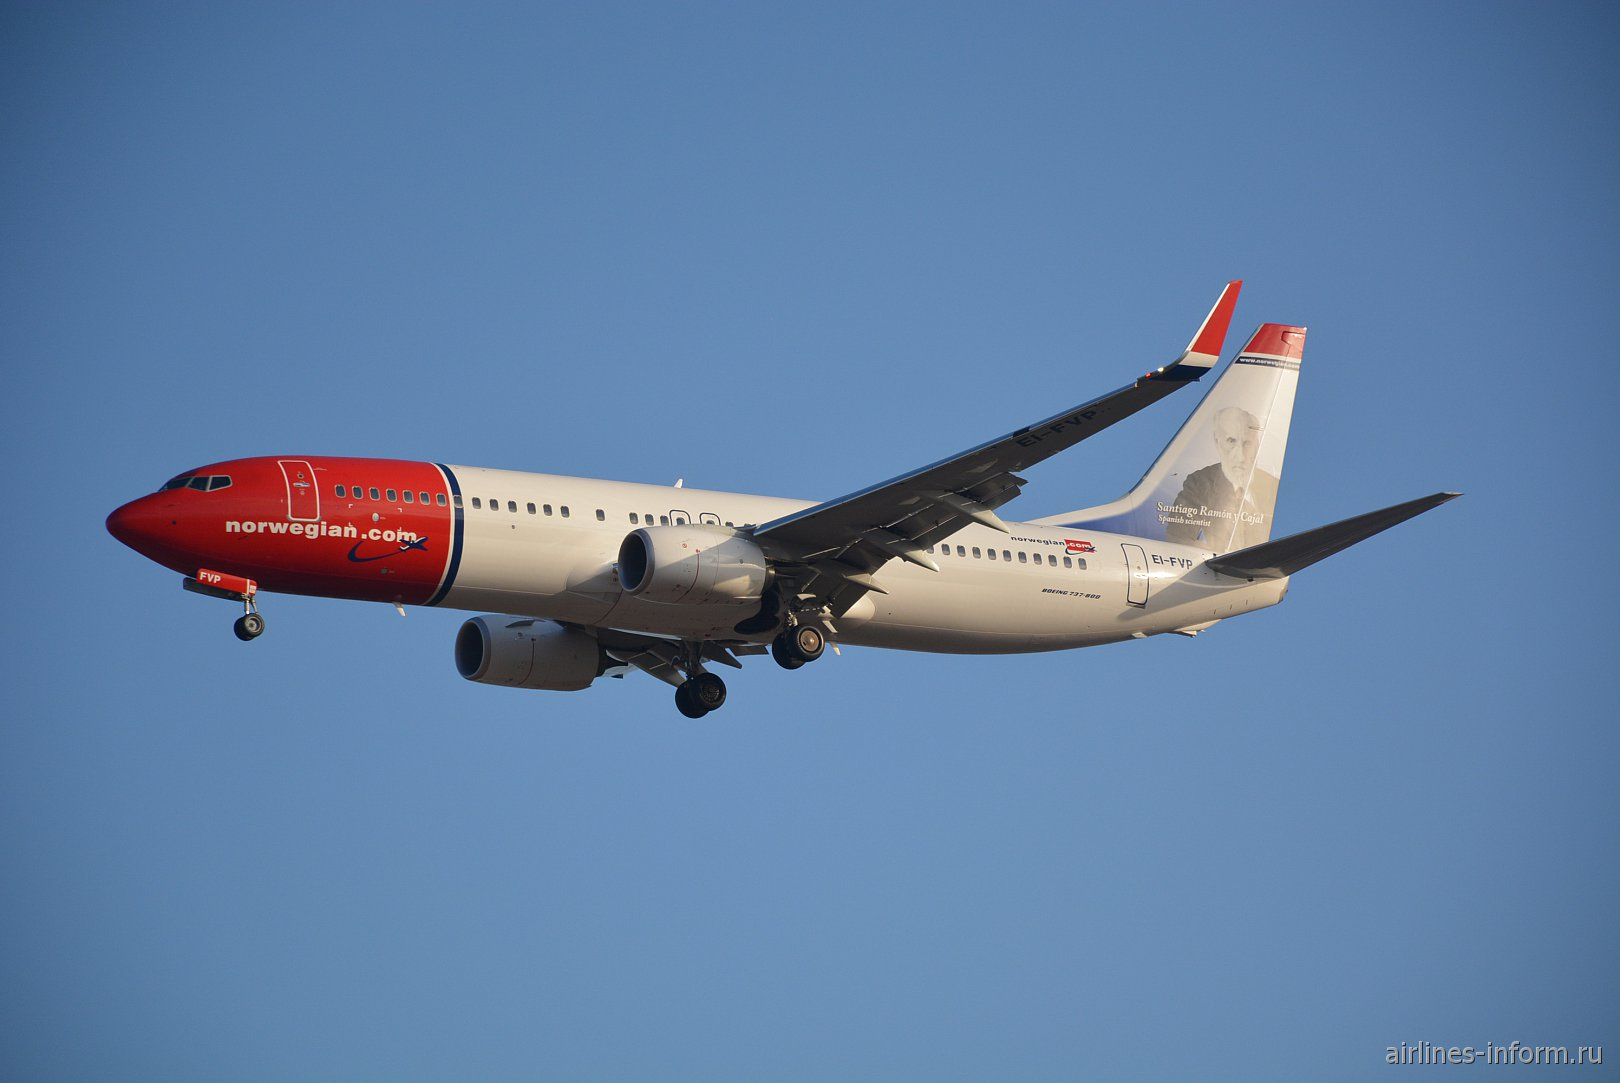 Boeing-737-800 с номером EI-FVP авиакомпании Norwegian